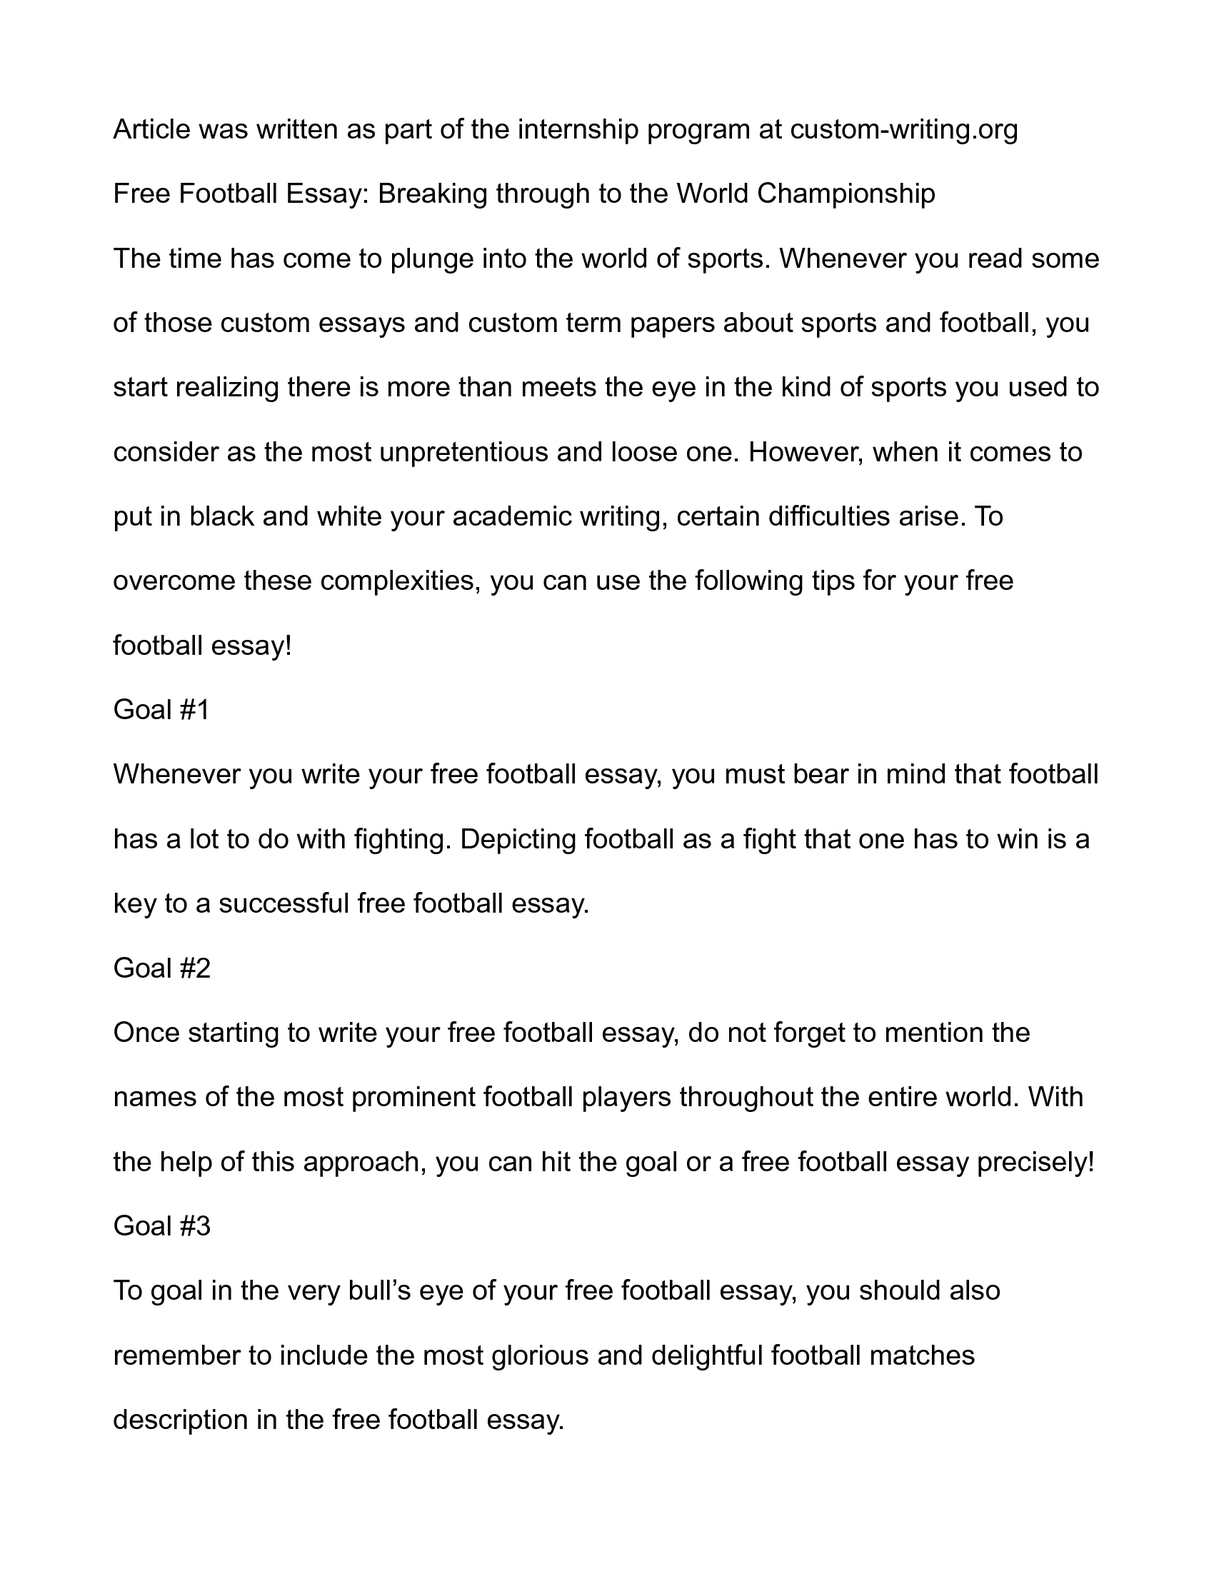 002 Football Essay P1 Exceptional My Favorite Game In Marathi Related Discursive Topics Hindi Wikipedia Full